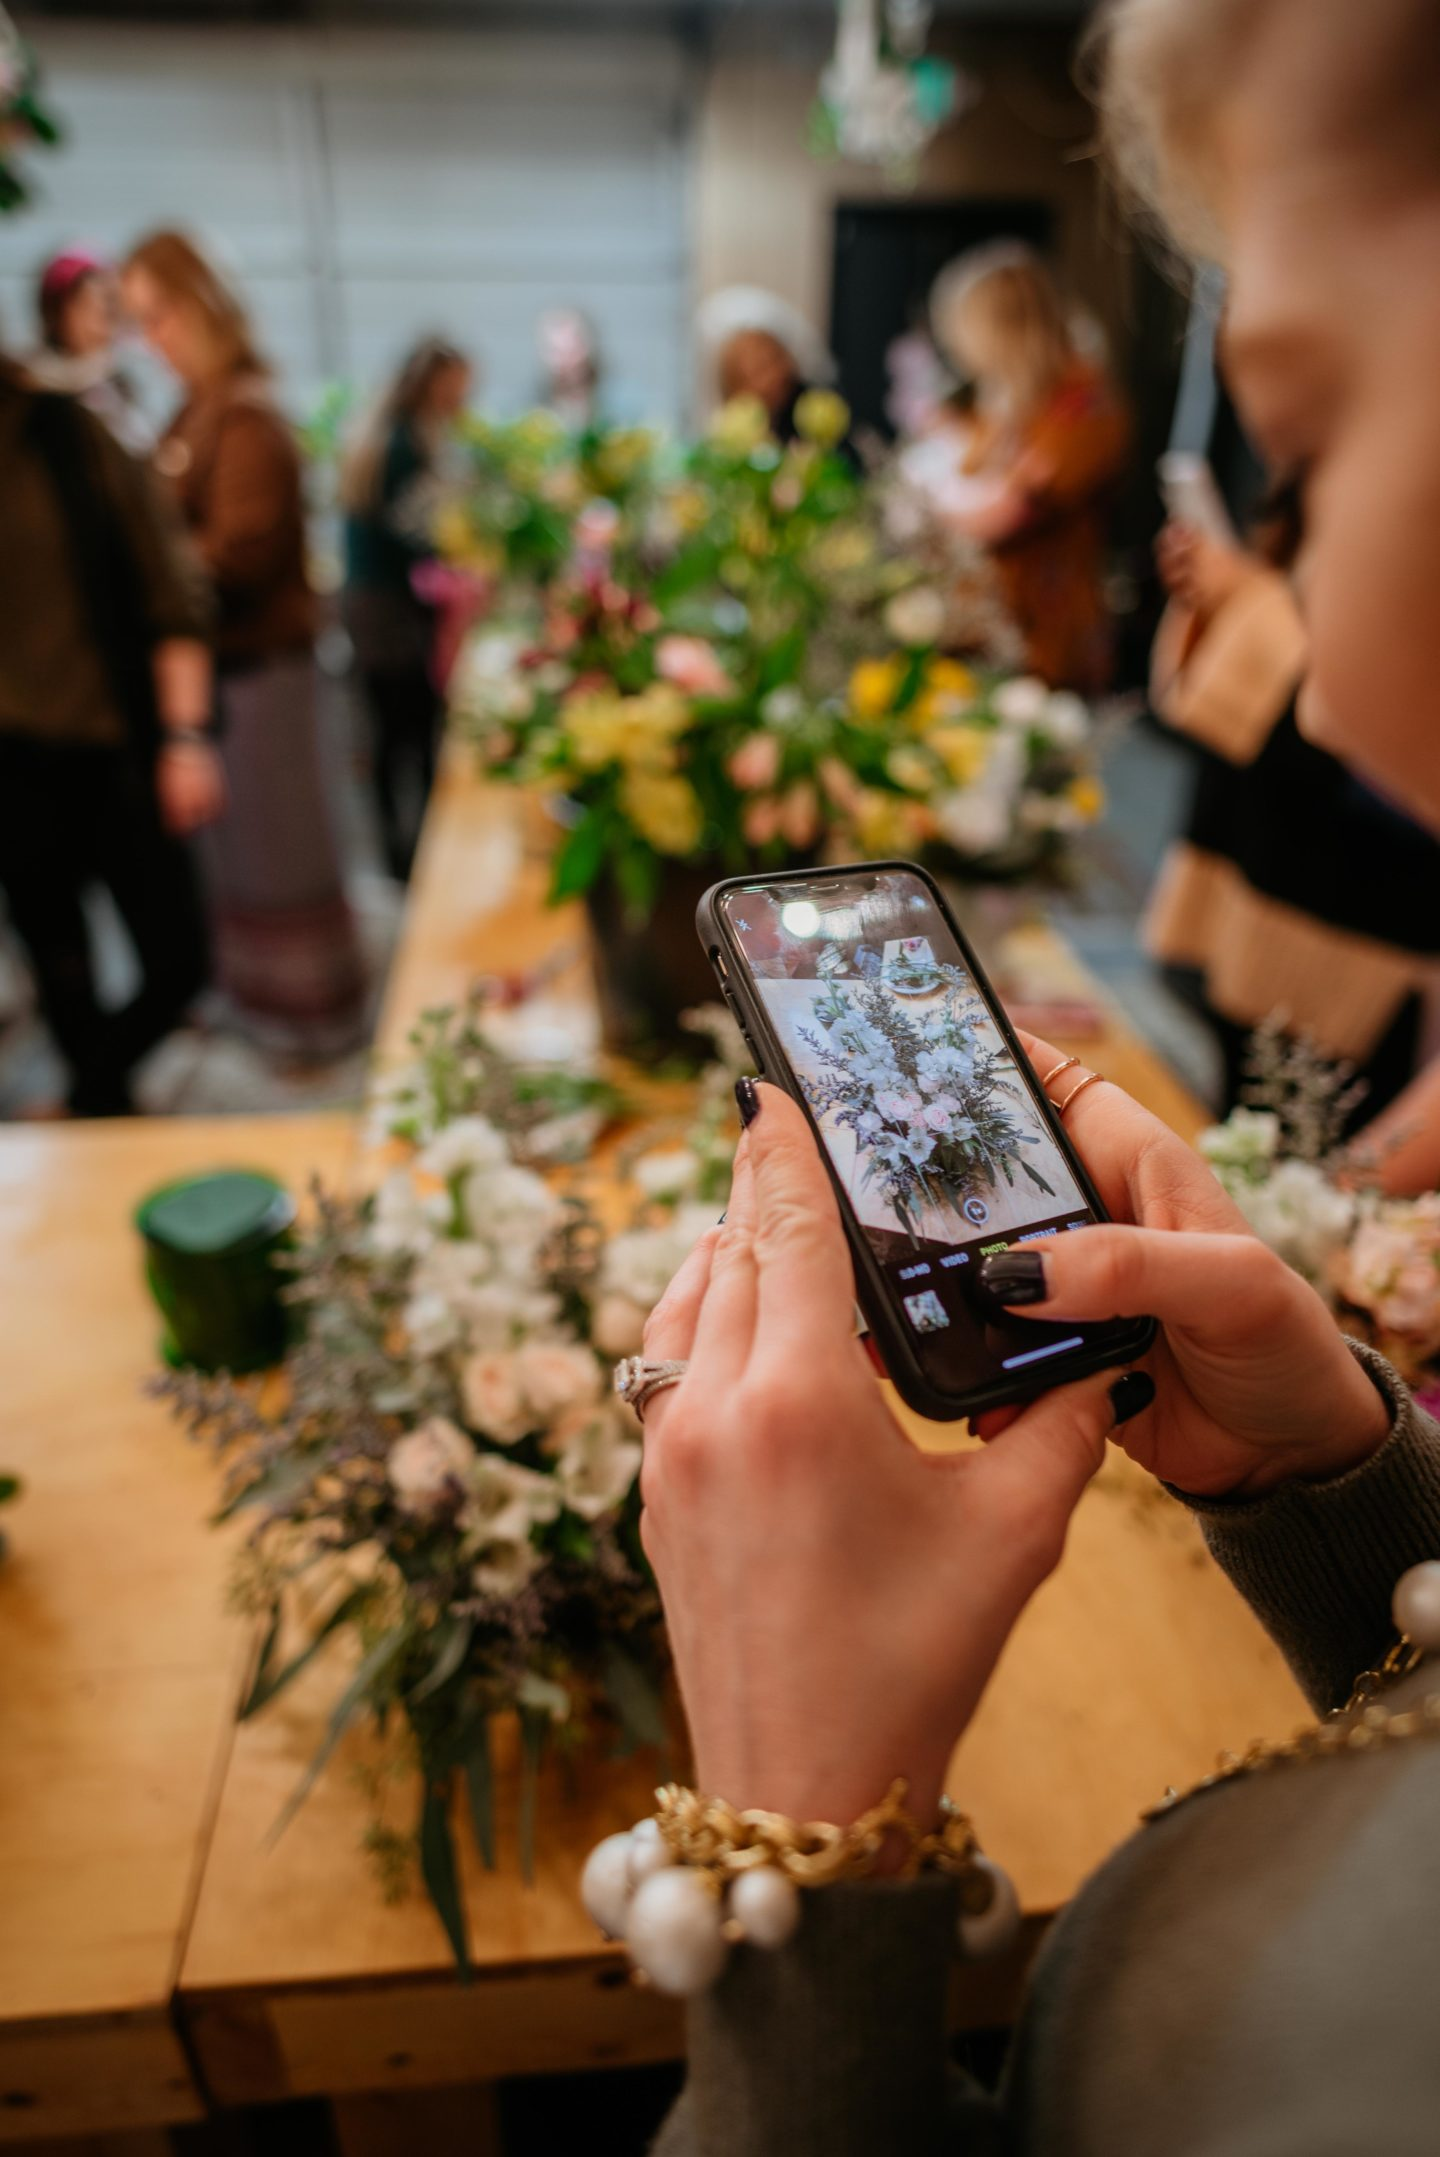 taking a photo of flowers